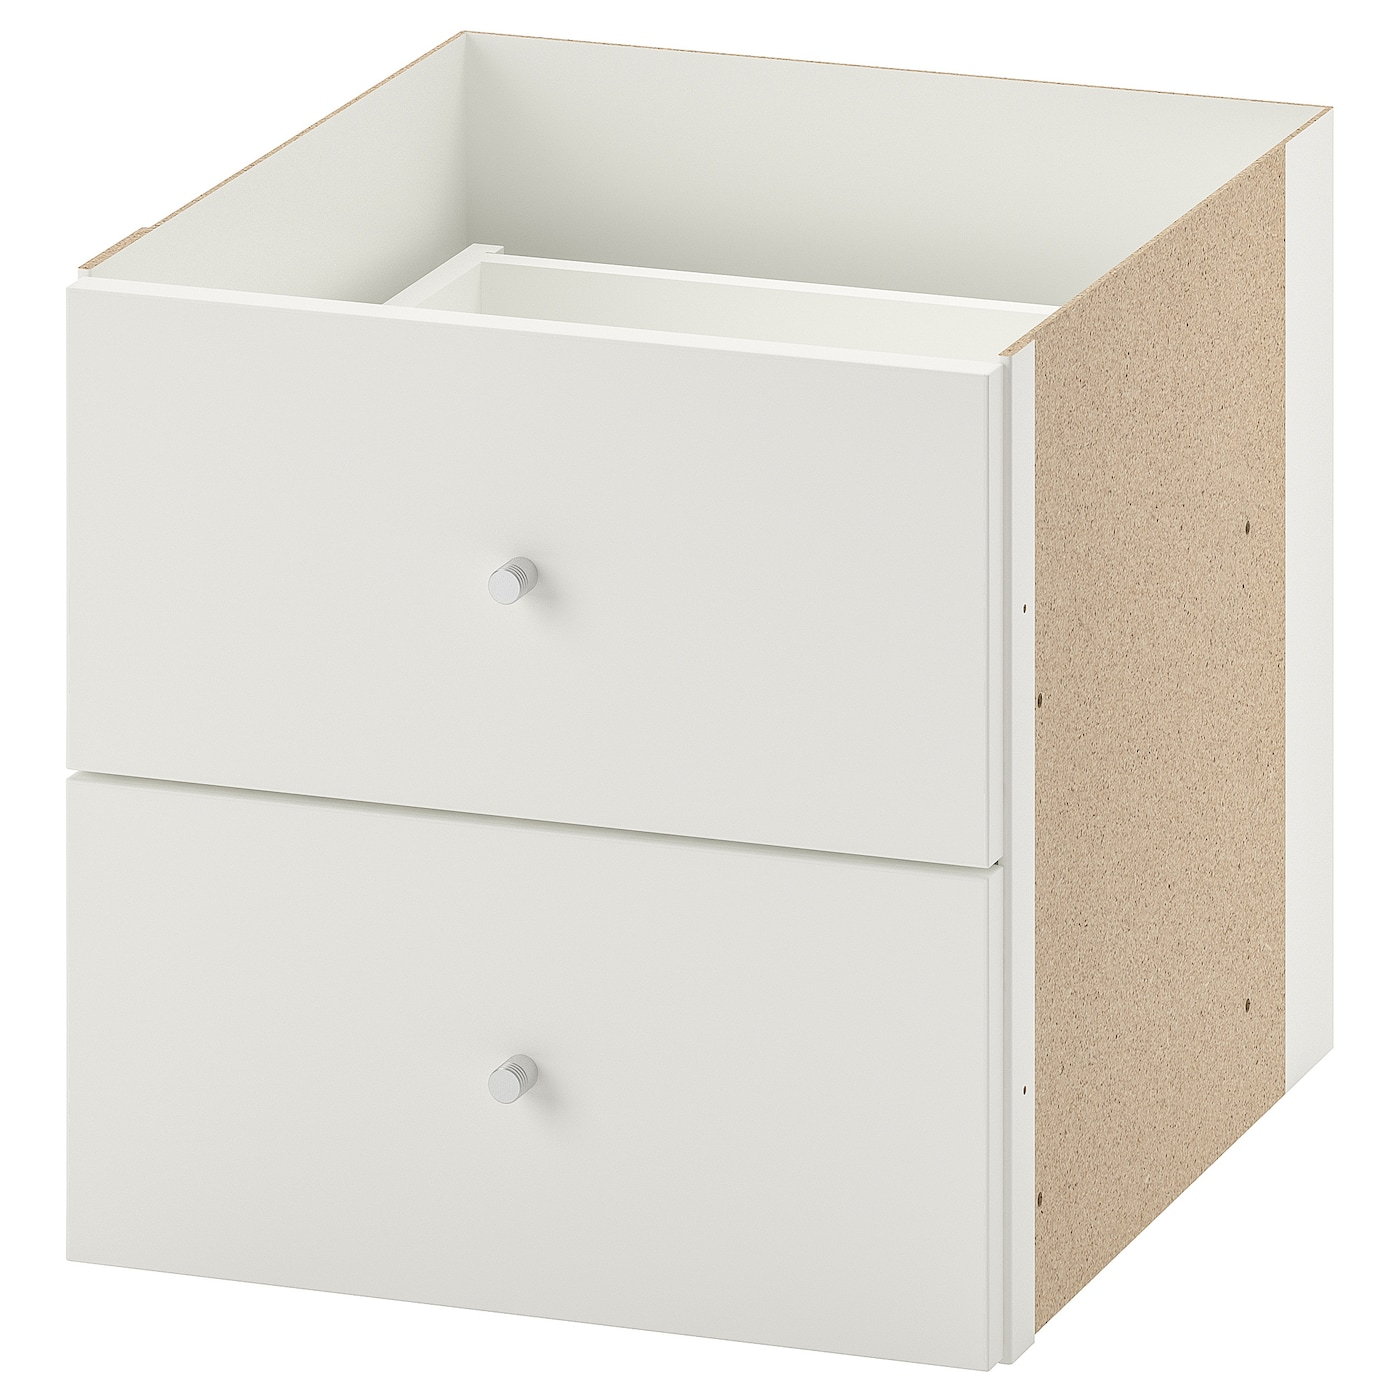 IKEA KALLAX insert with 2 drawers Easy to assemble.